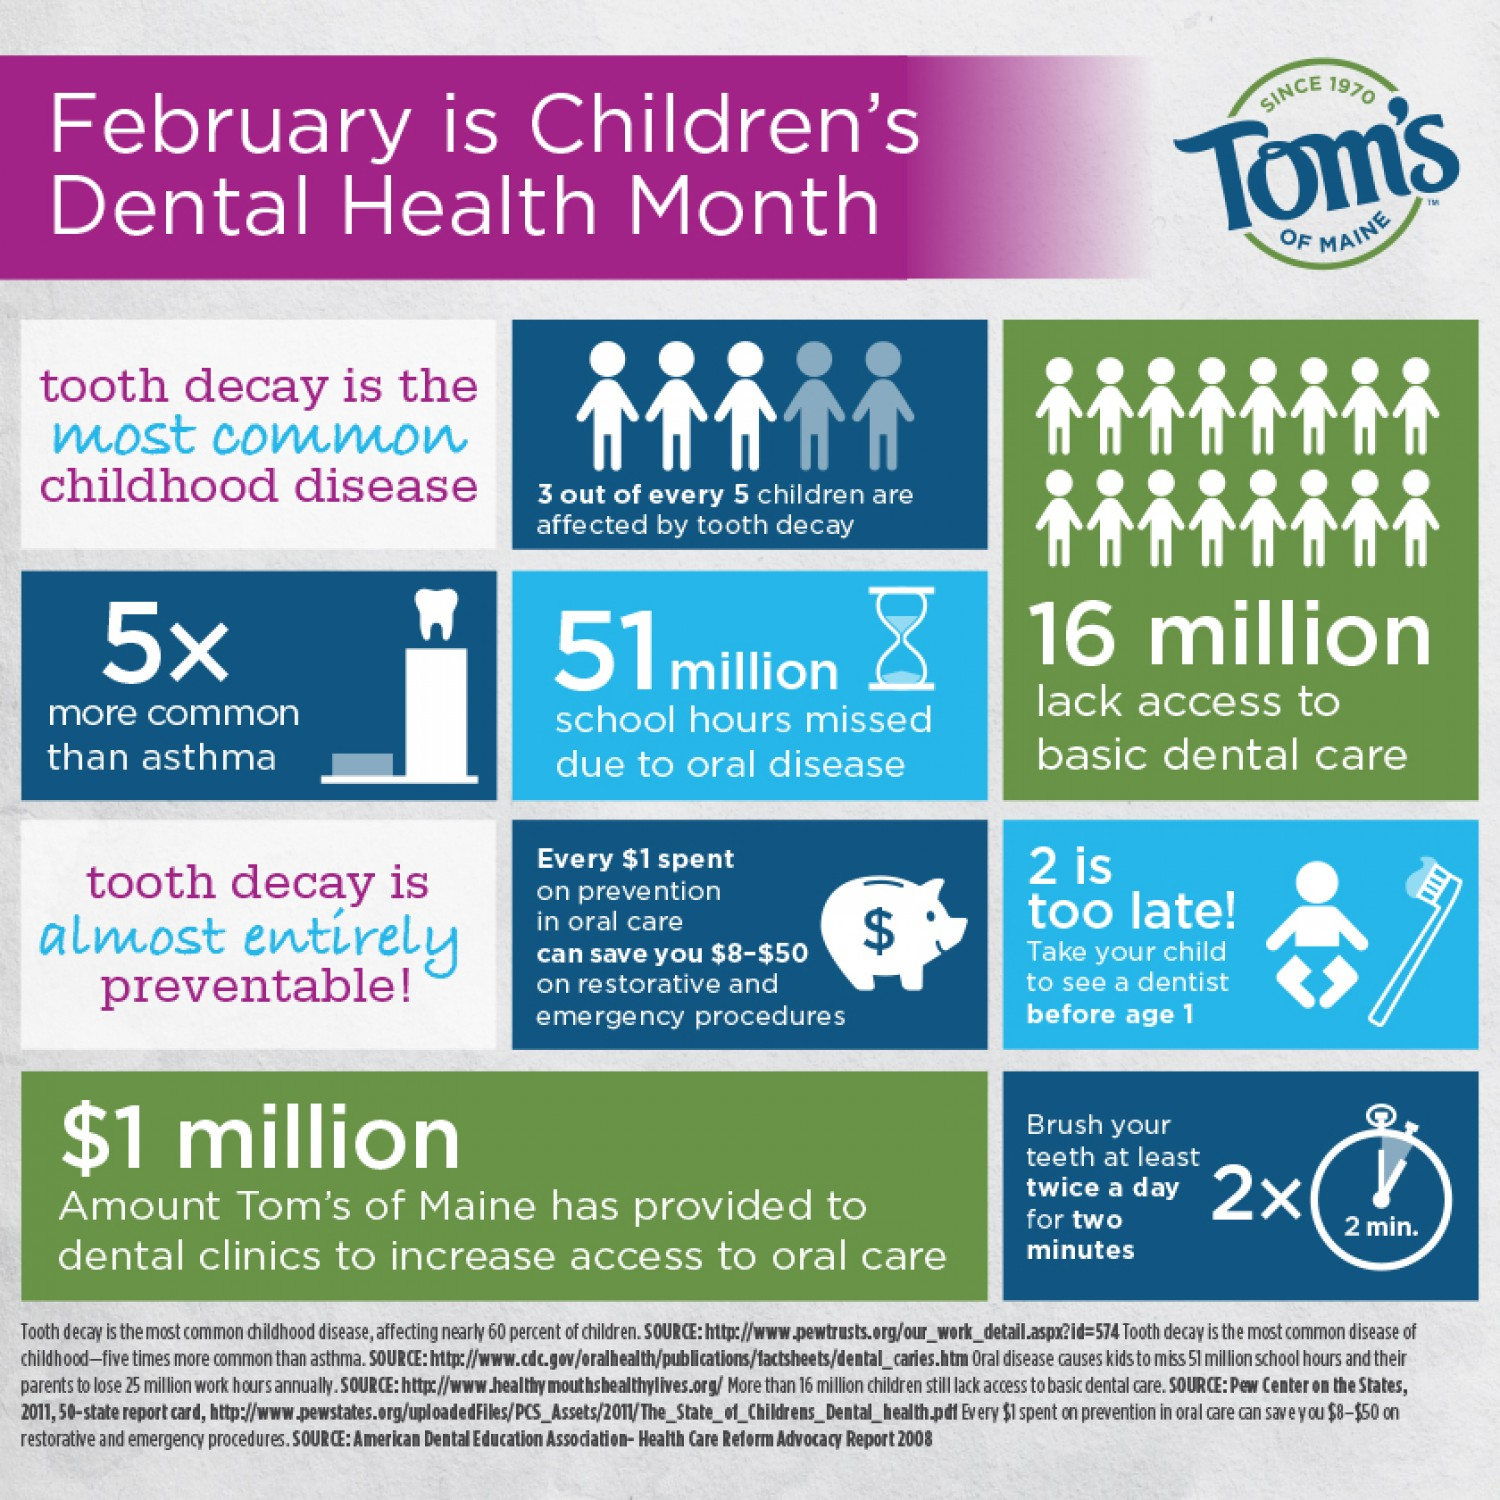 february-is-childrens-dental-health-month_5123f98486d52_w1500.jpg